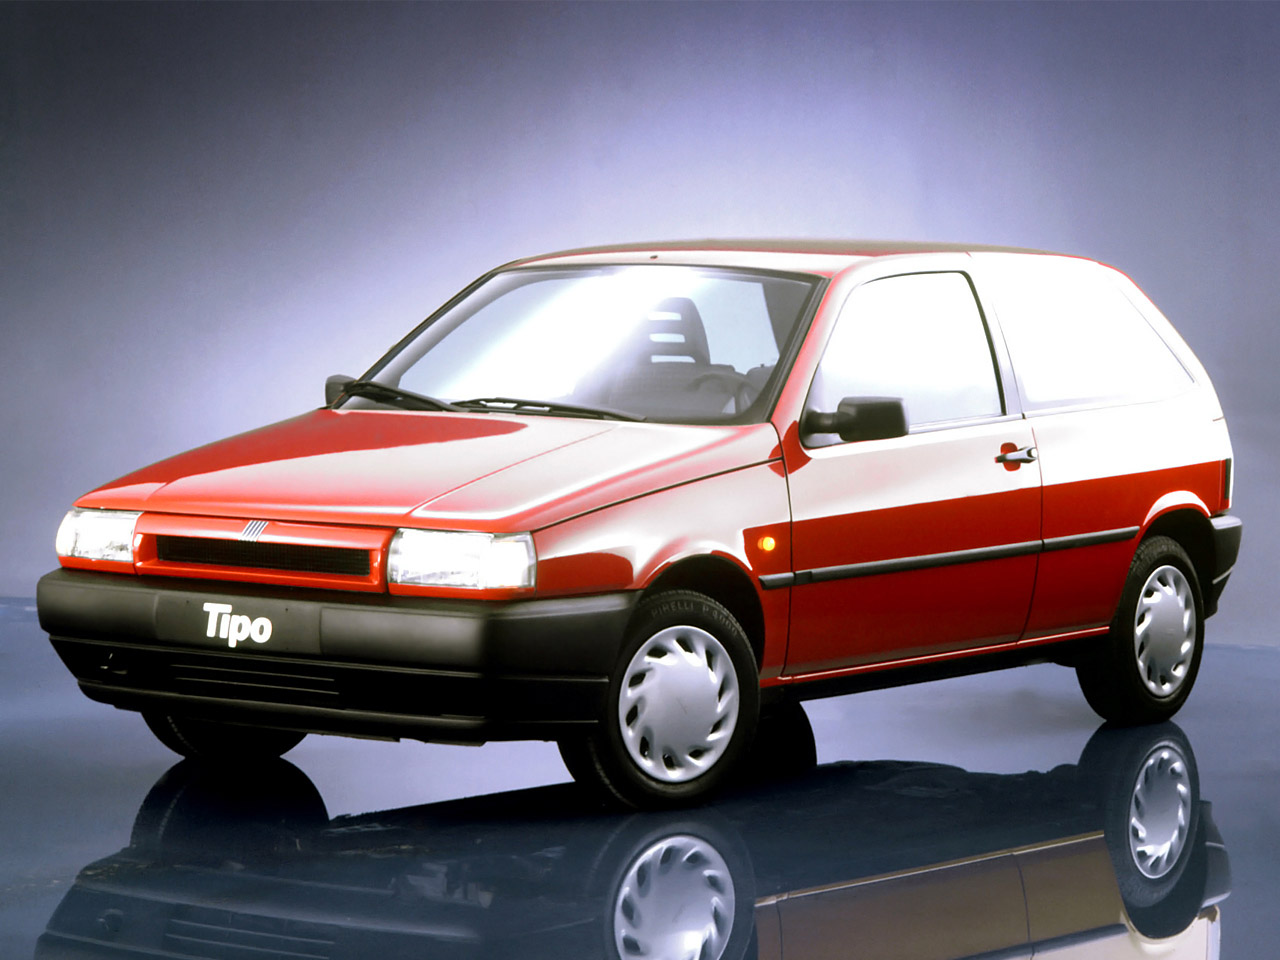 Fiat Tipo 1995 Review Amazing Pictures And Images Look